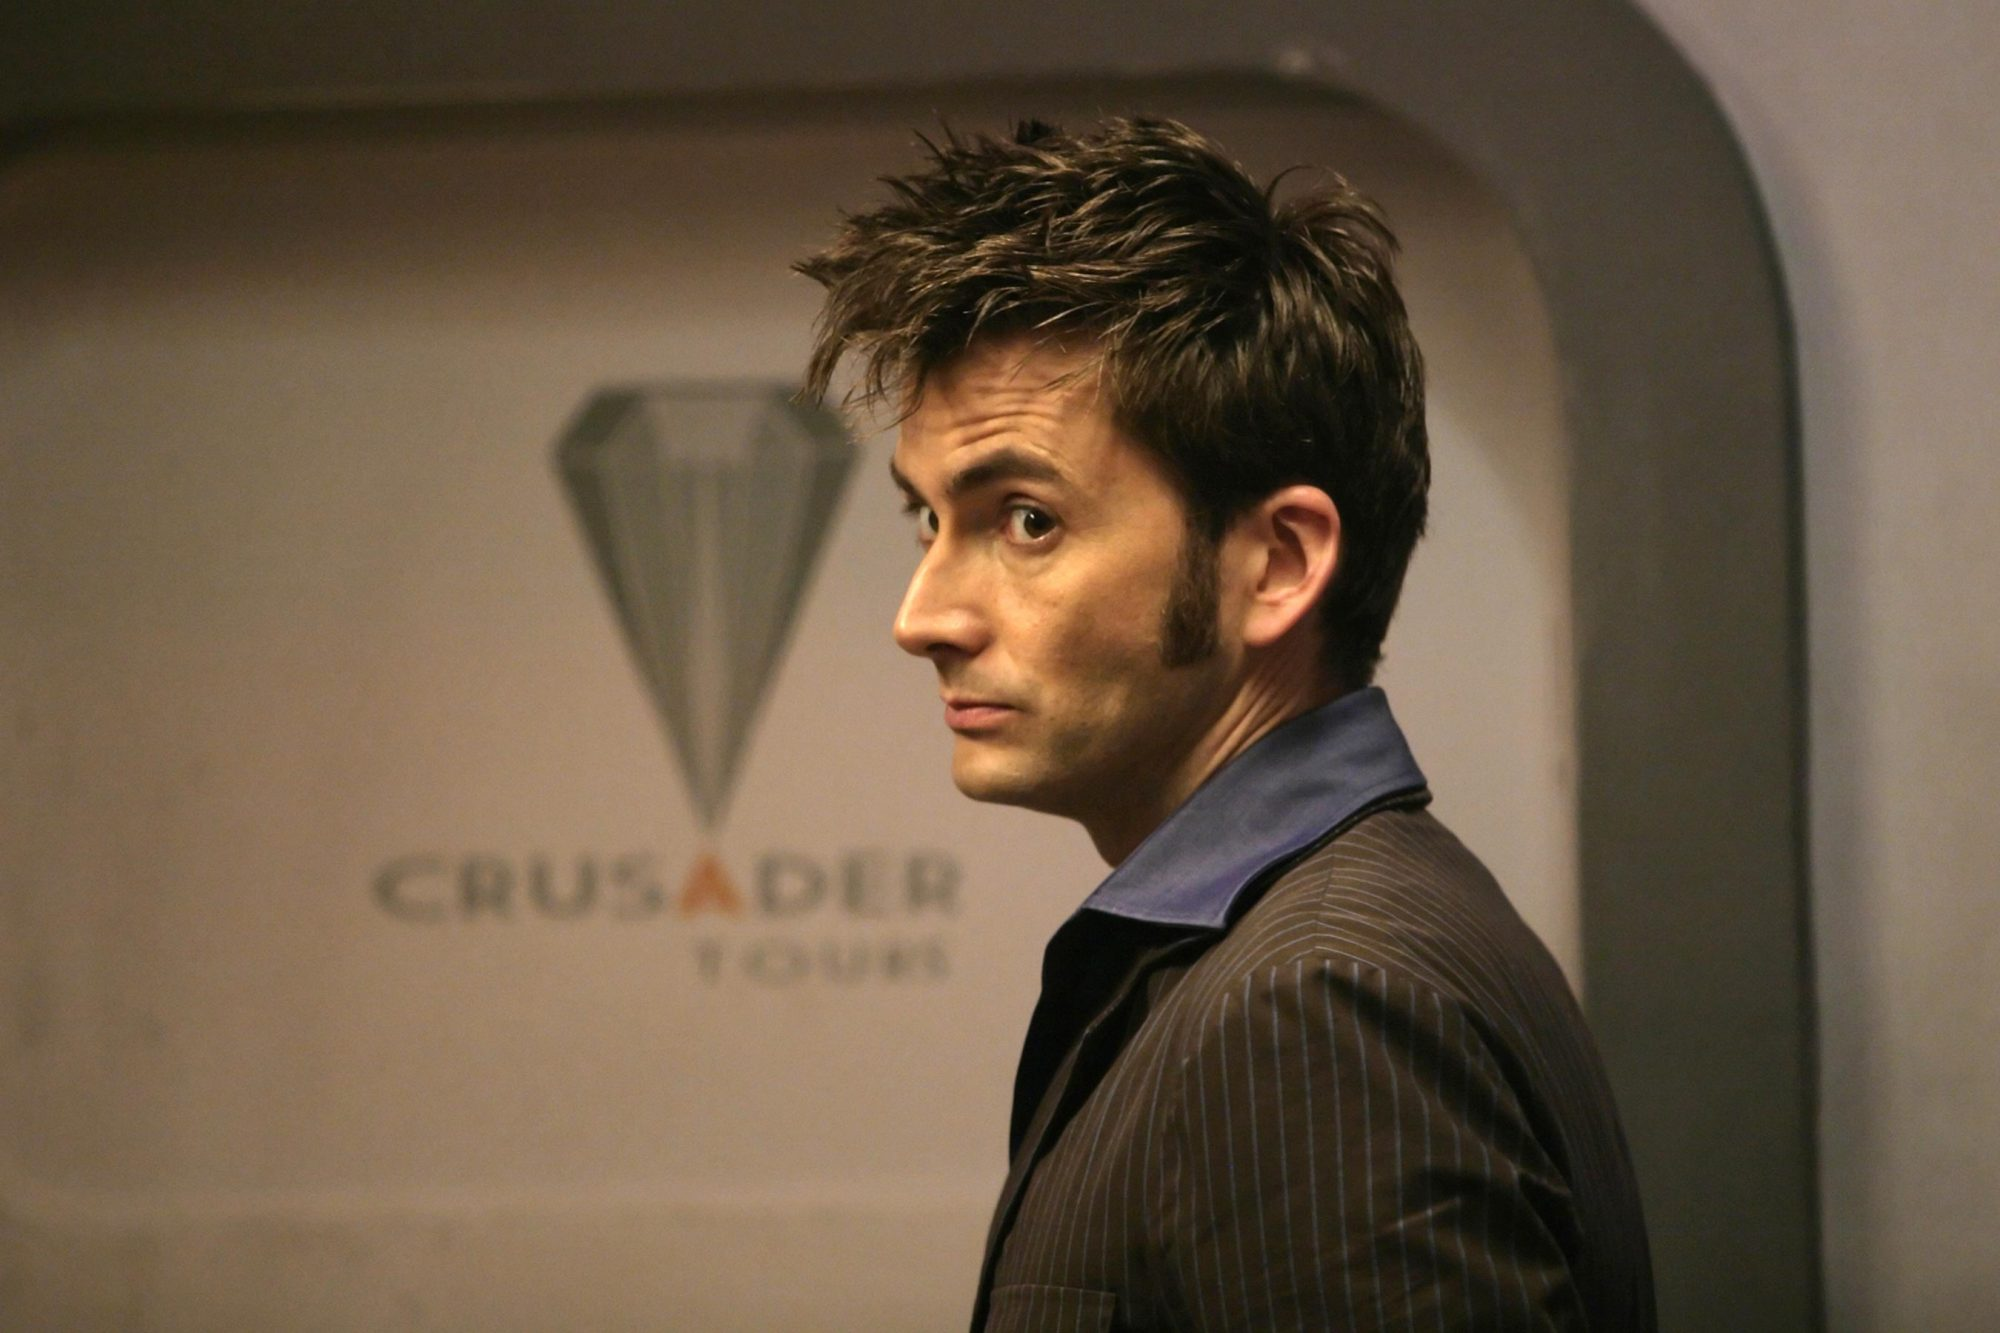 Doctor Who S4 EP10